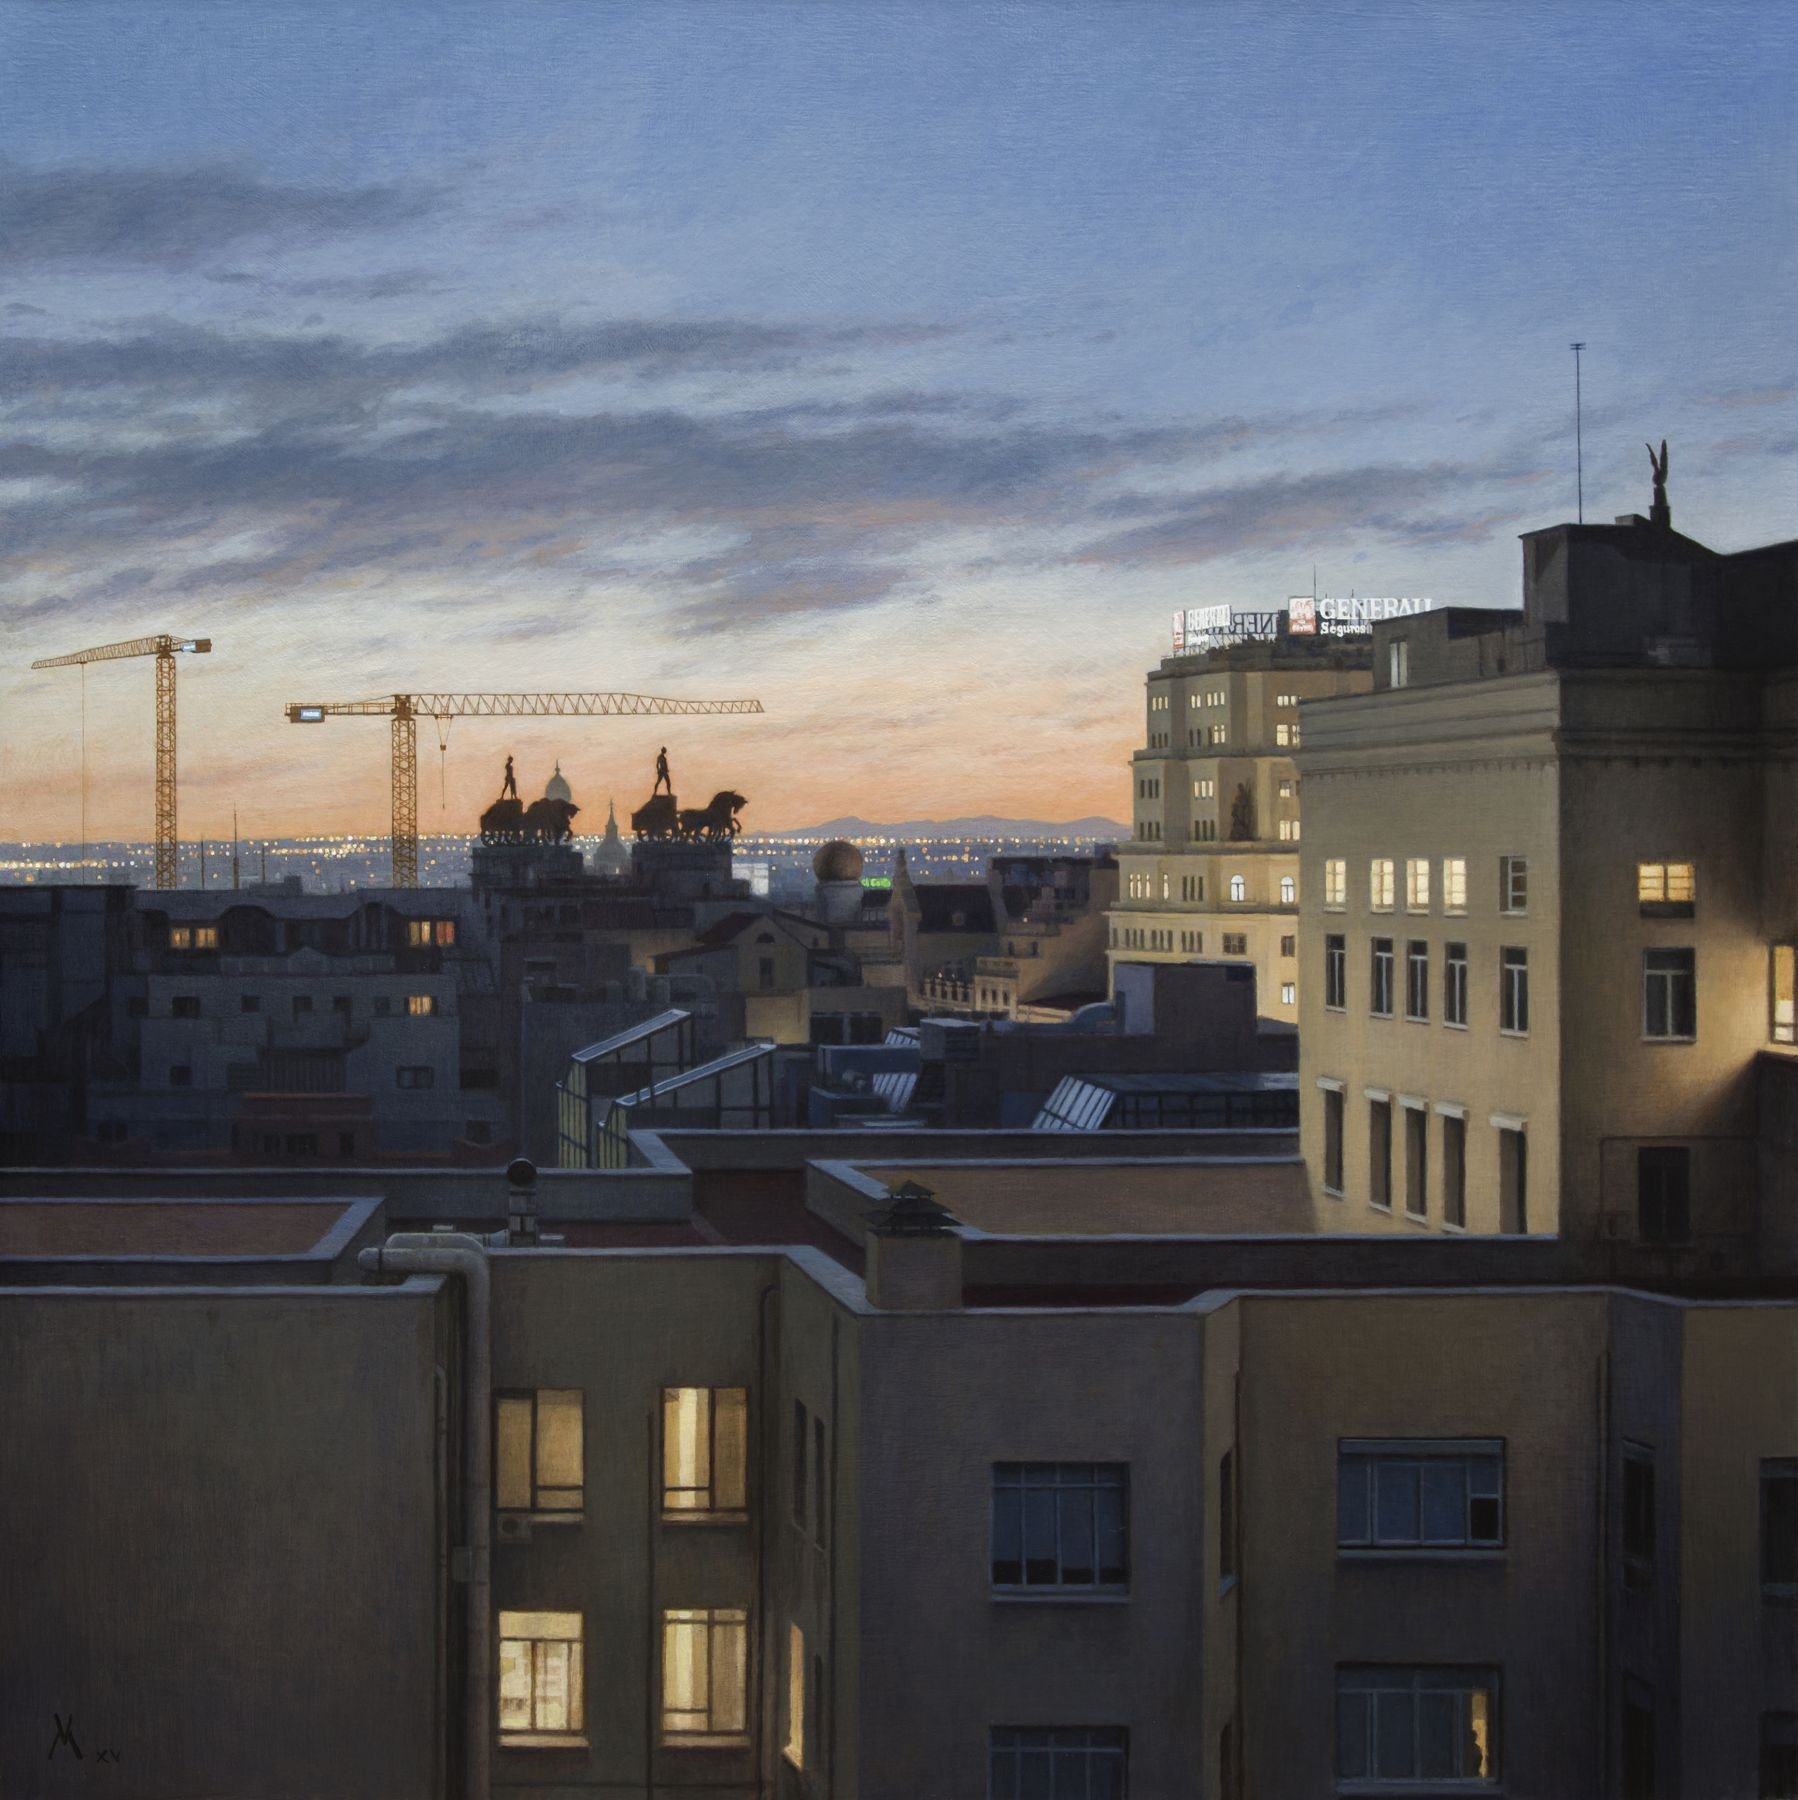 guillermo munoz vera, Quadrigas Over Madrid (Cuadrigas Sobre Madrid), 2015, oil on canvas mounted on panel, 59 x 59 inches